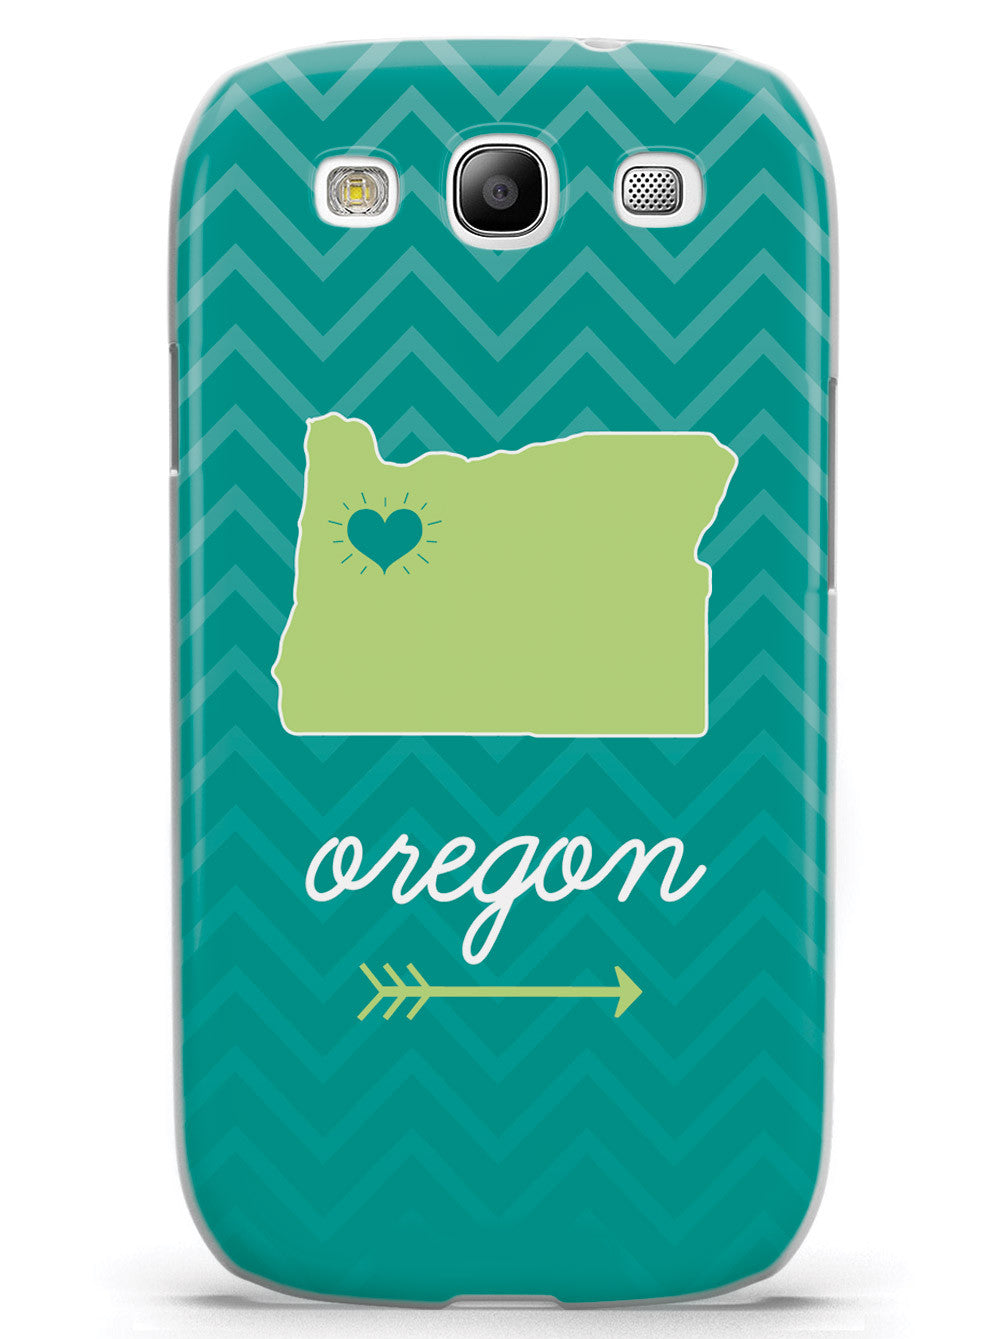 Oregon Chevron Pattern State Case